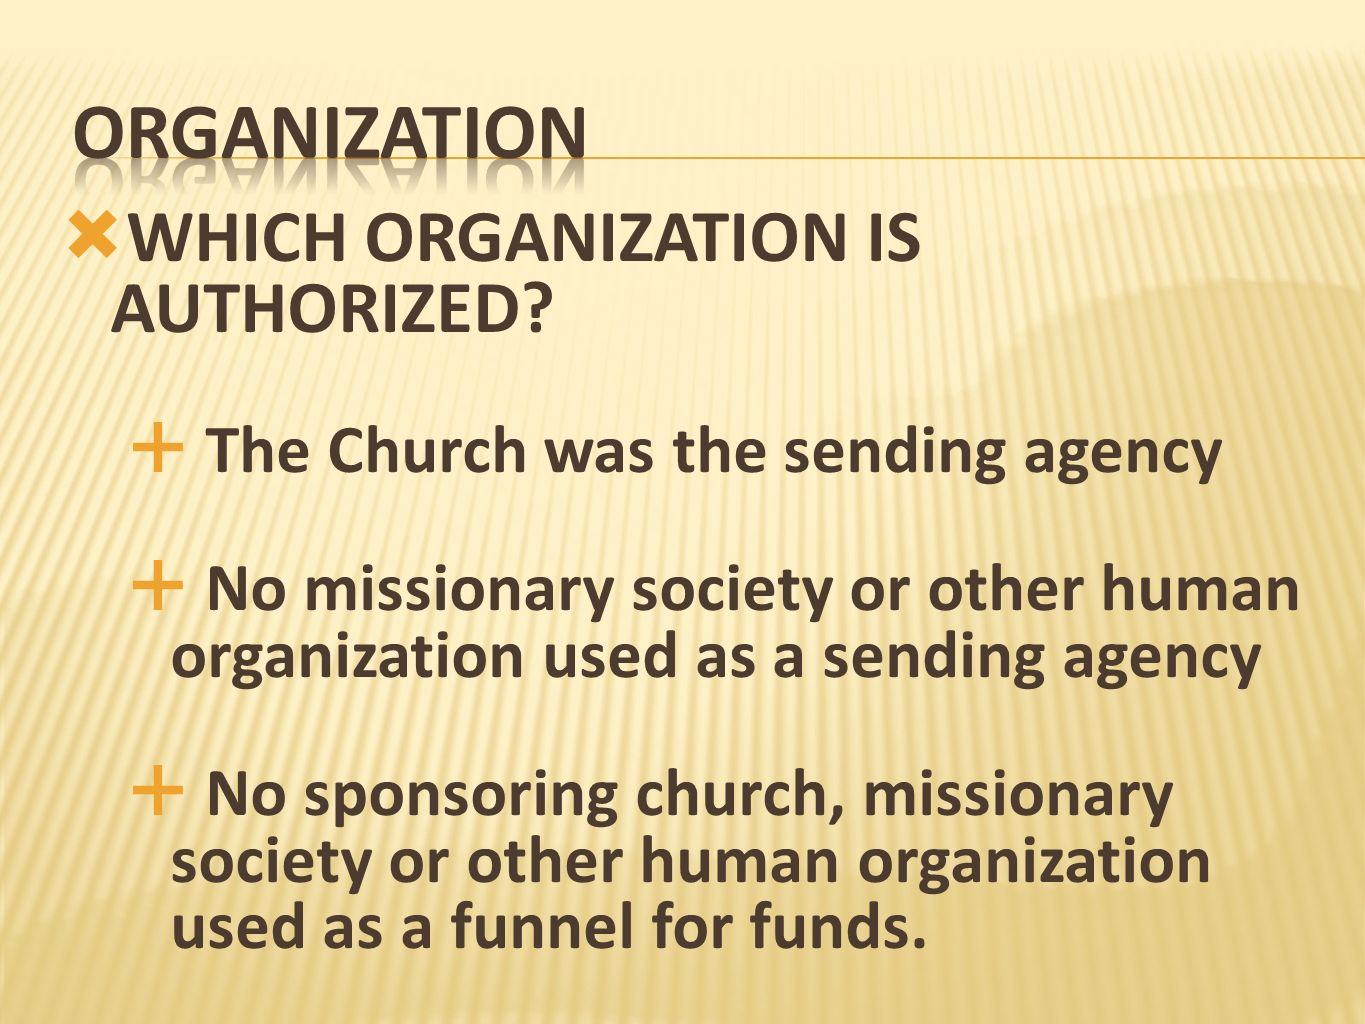 organization WHICH ORGANIZATION IS AUTHORIZED